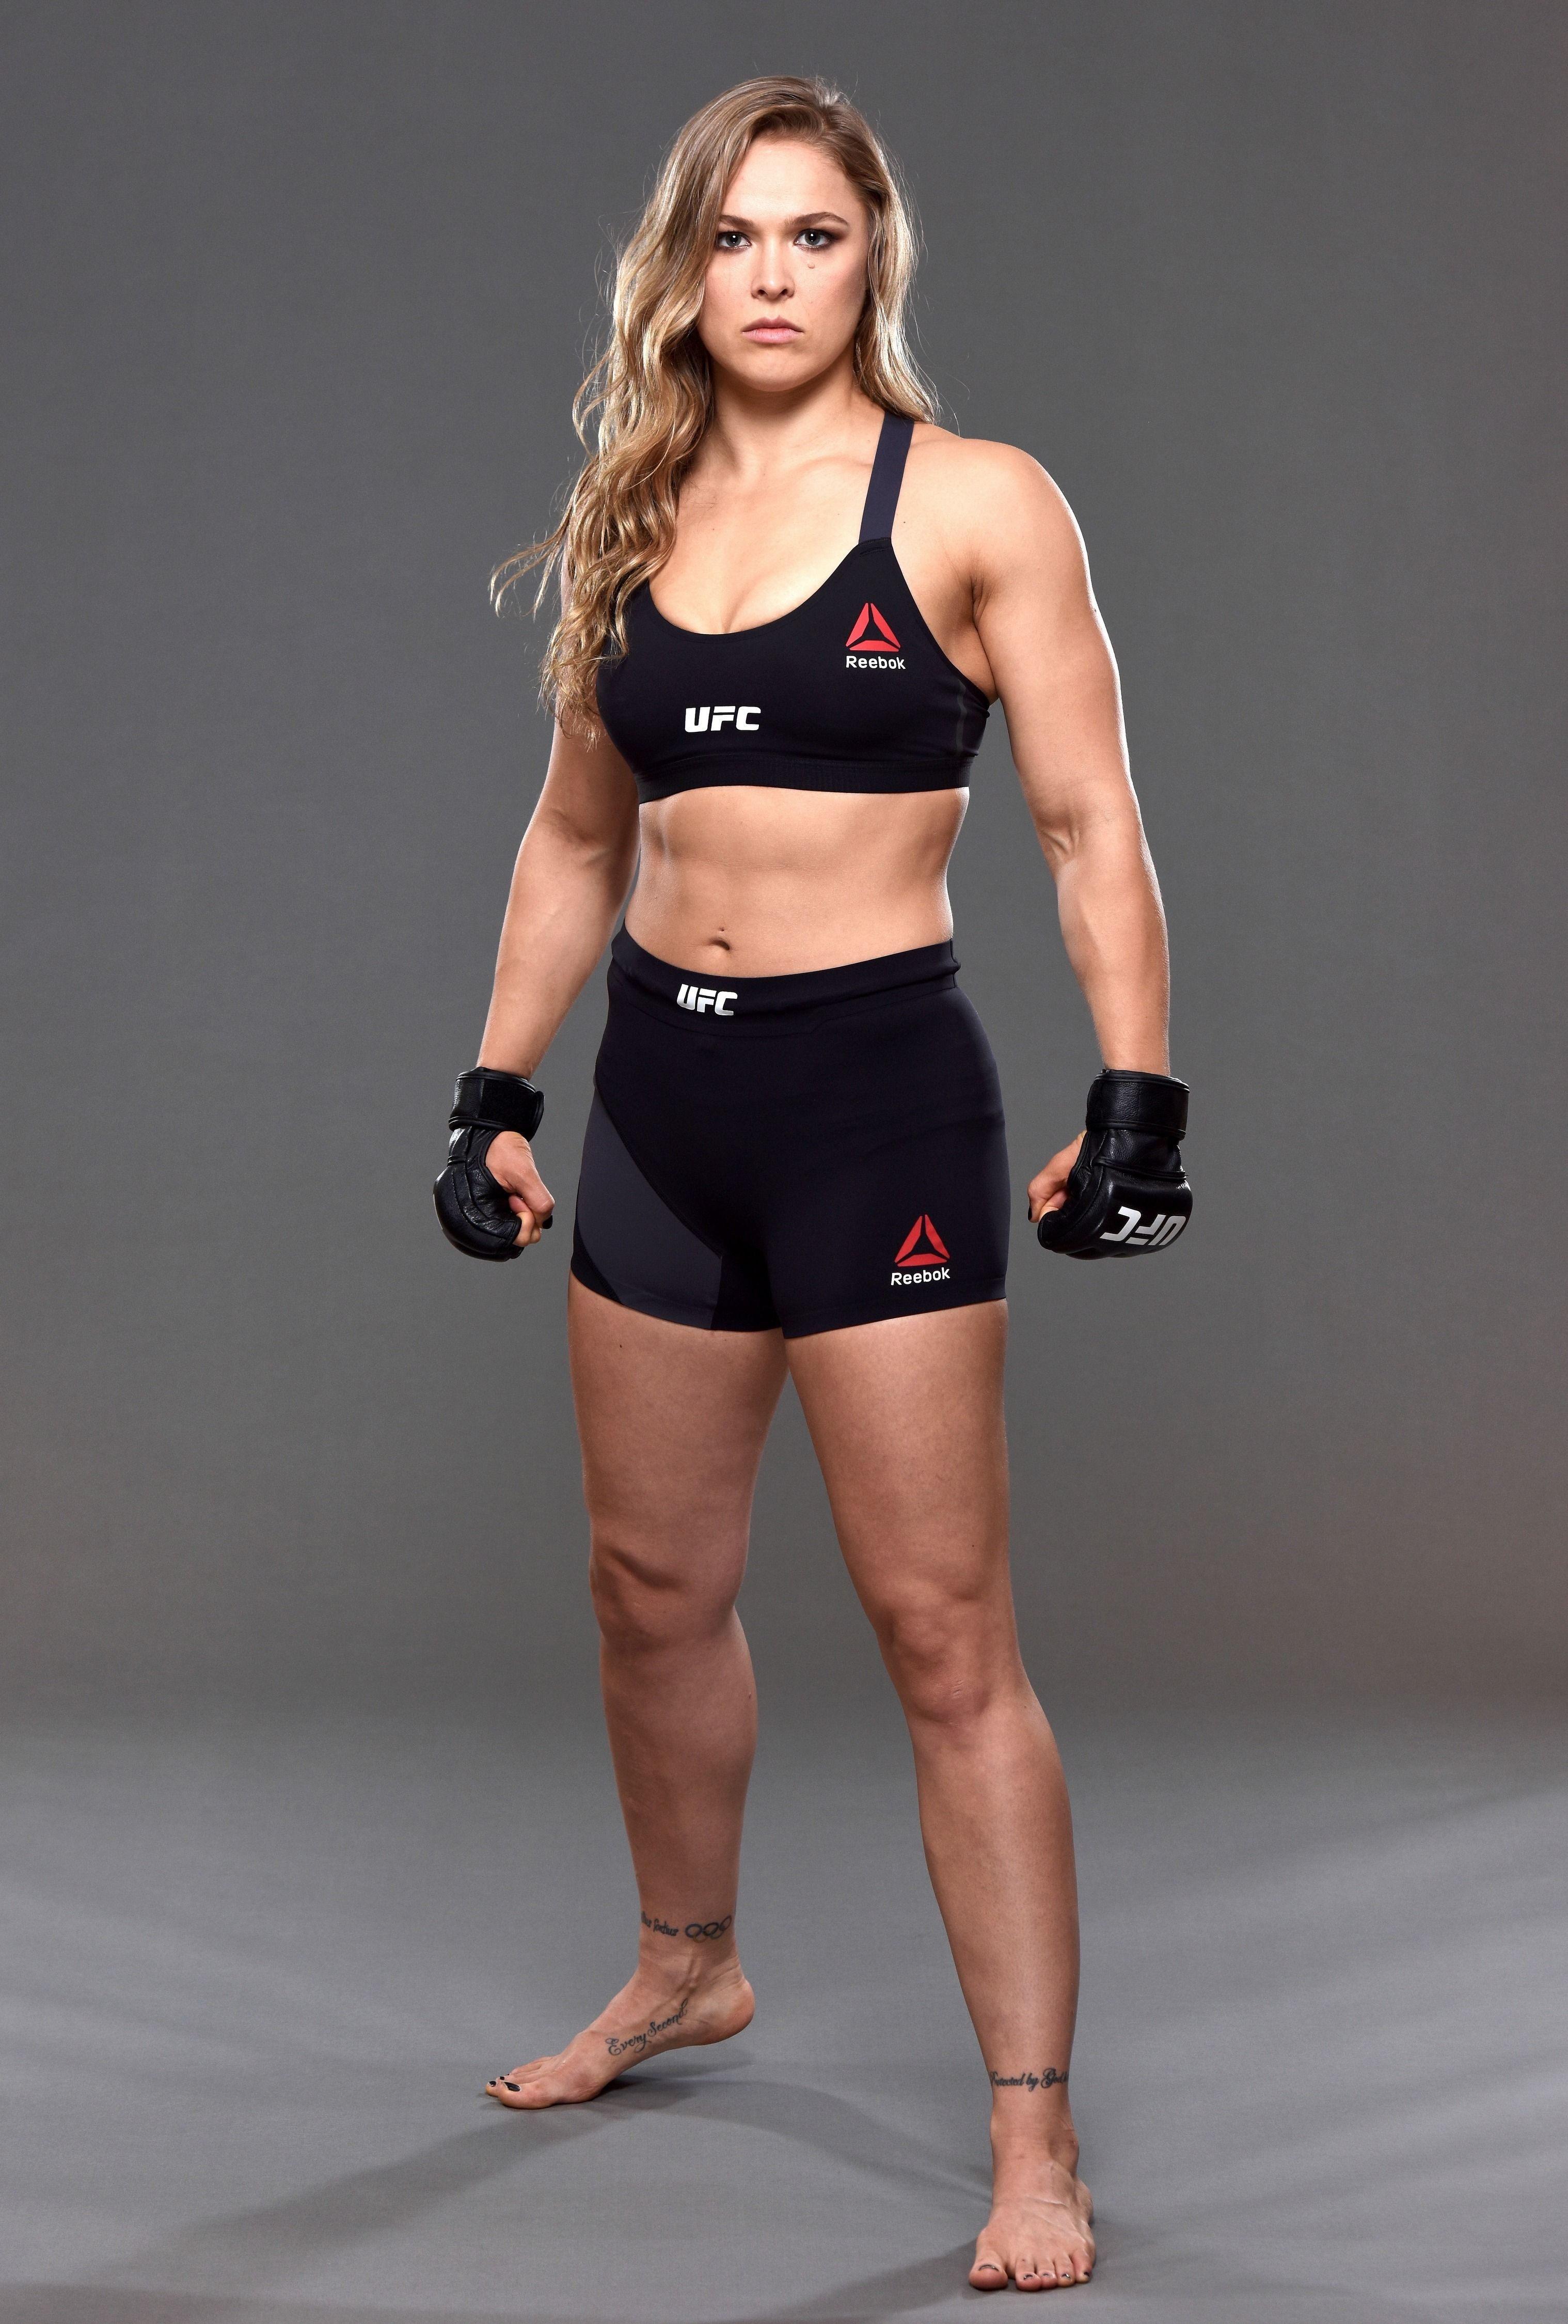 Ronda Rousey Ronda Rousey new picture